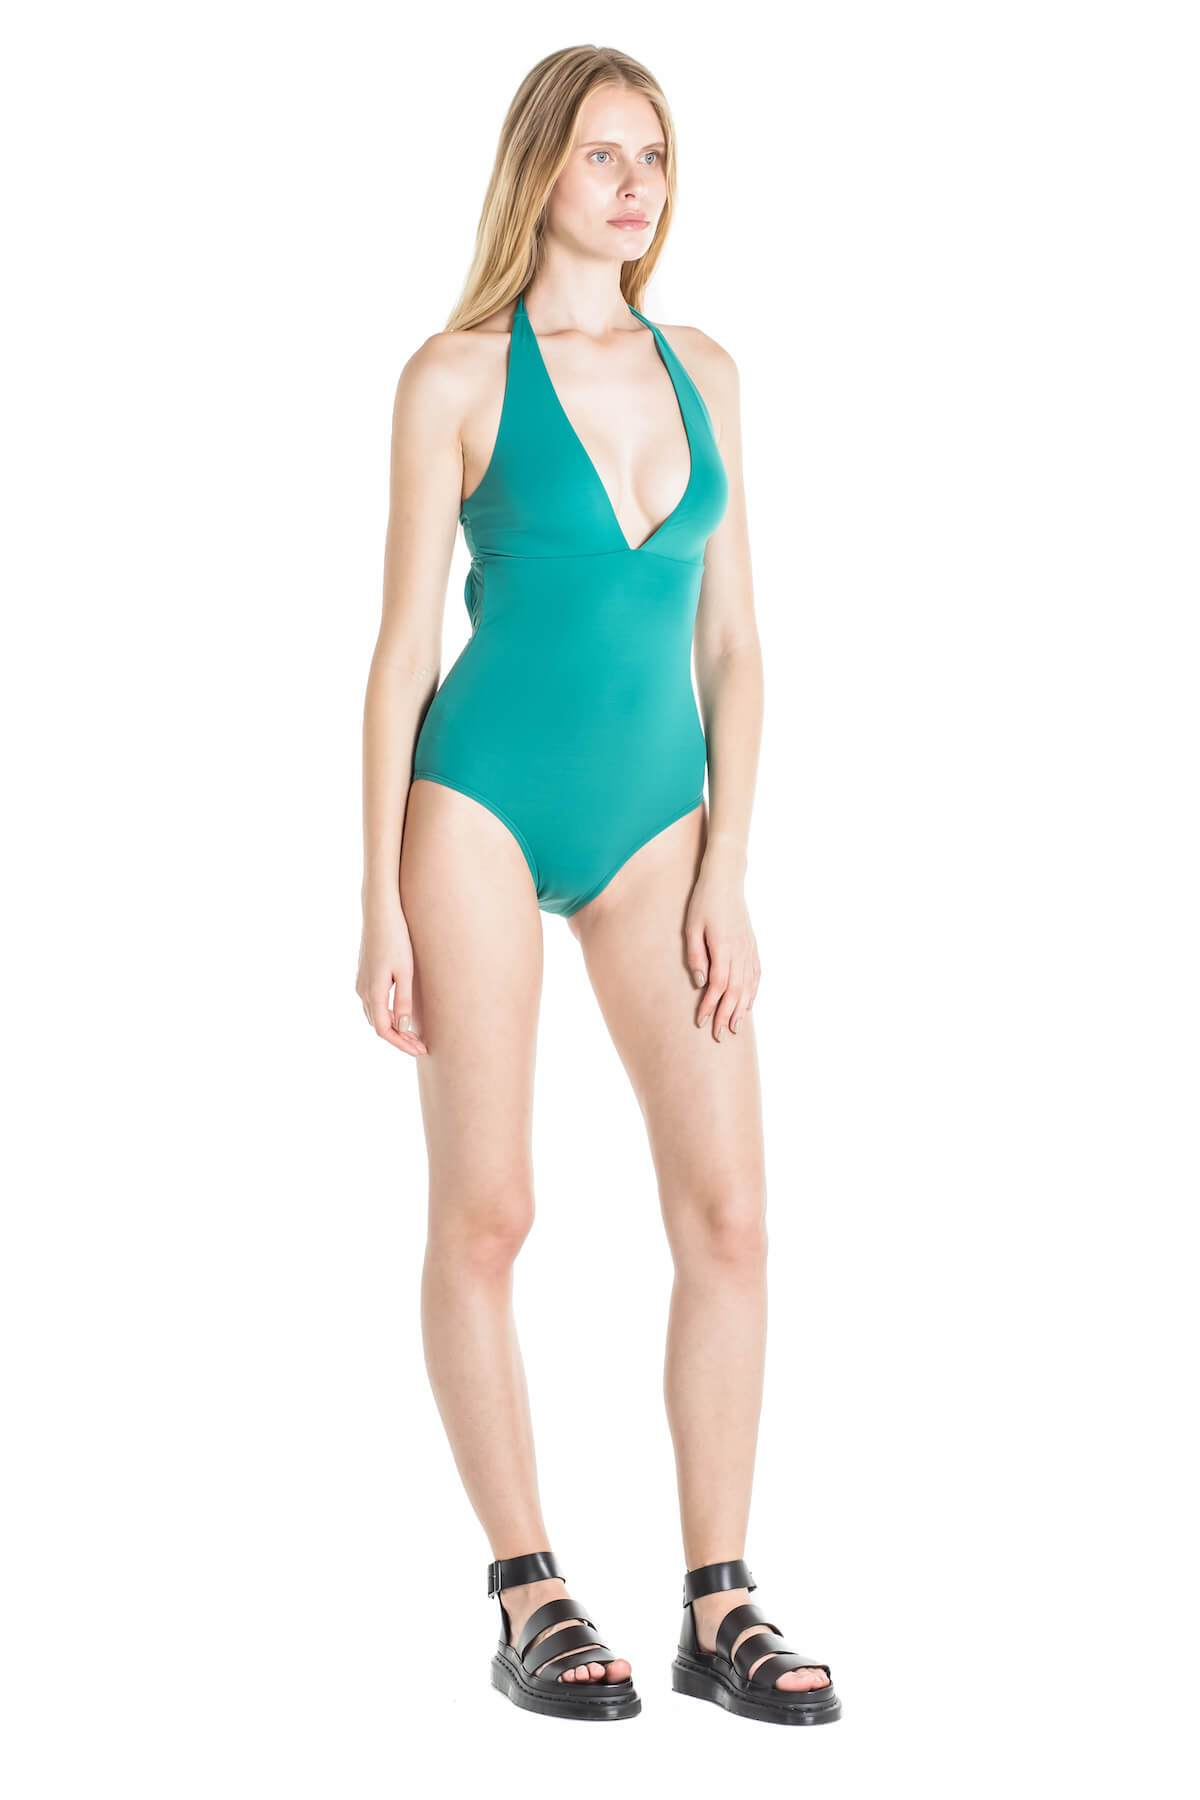 side of model wearing green one piece with plunging neckline